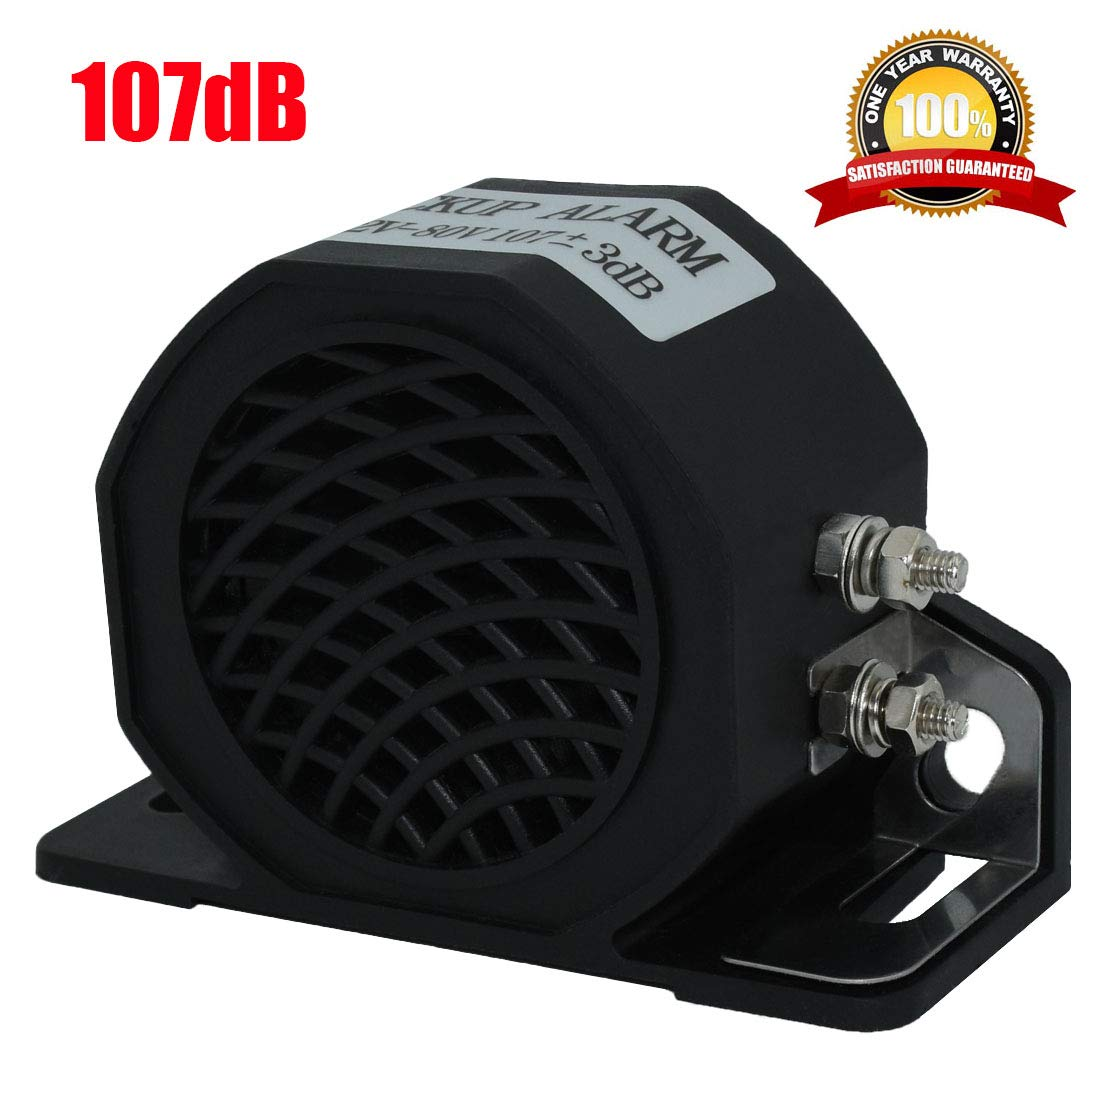 MIRKOO Car Back-up Alarm 107dB 12V-80V DC Waterproof Industrial Heavy-Duty Backup Reverse Warning Alarm with Super Loud Beeper Tone for Truck Van Freight Car Lorry Heavy Vehicles